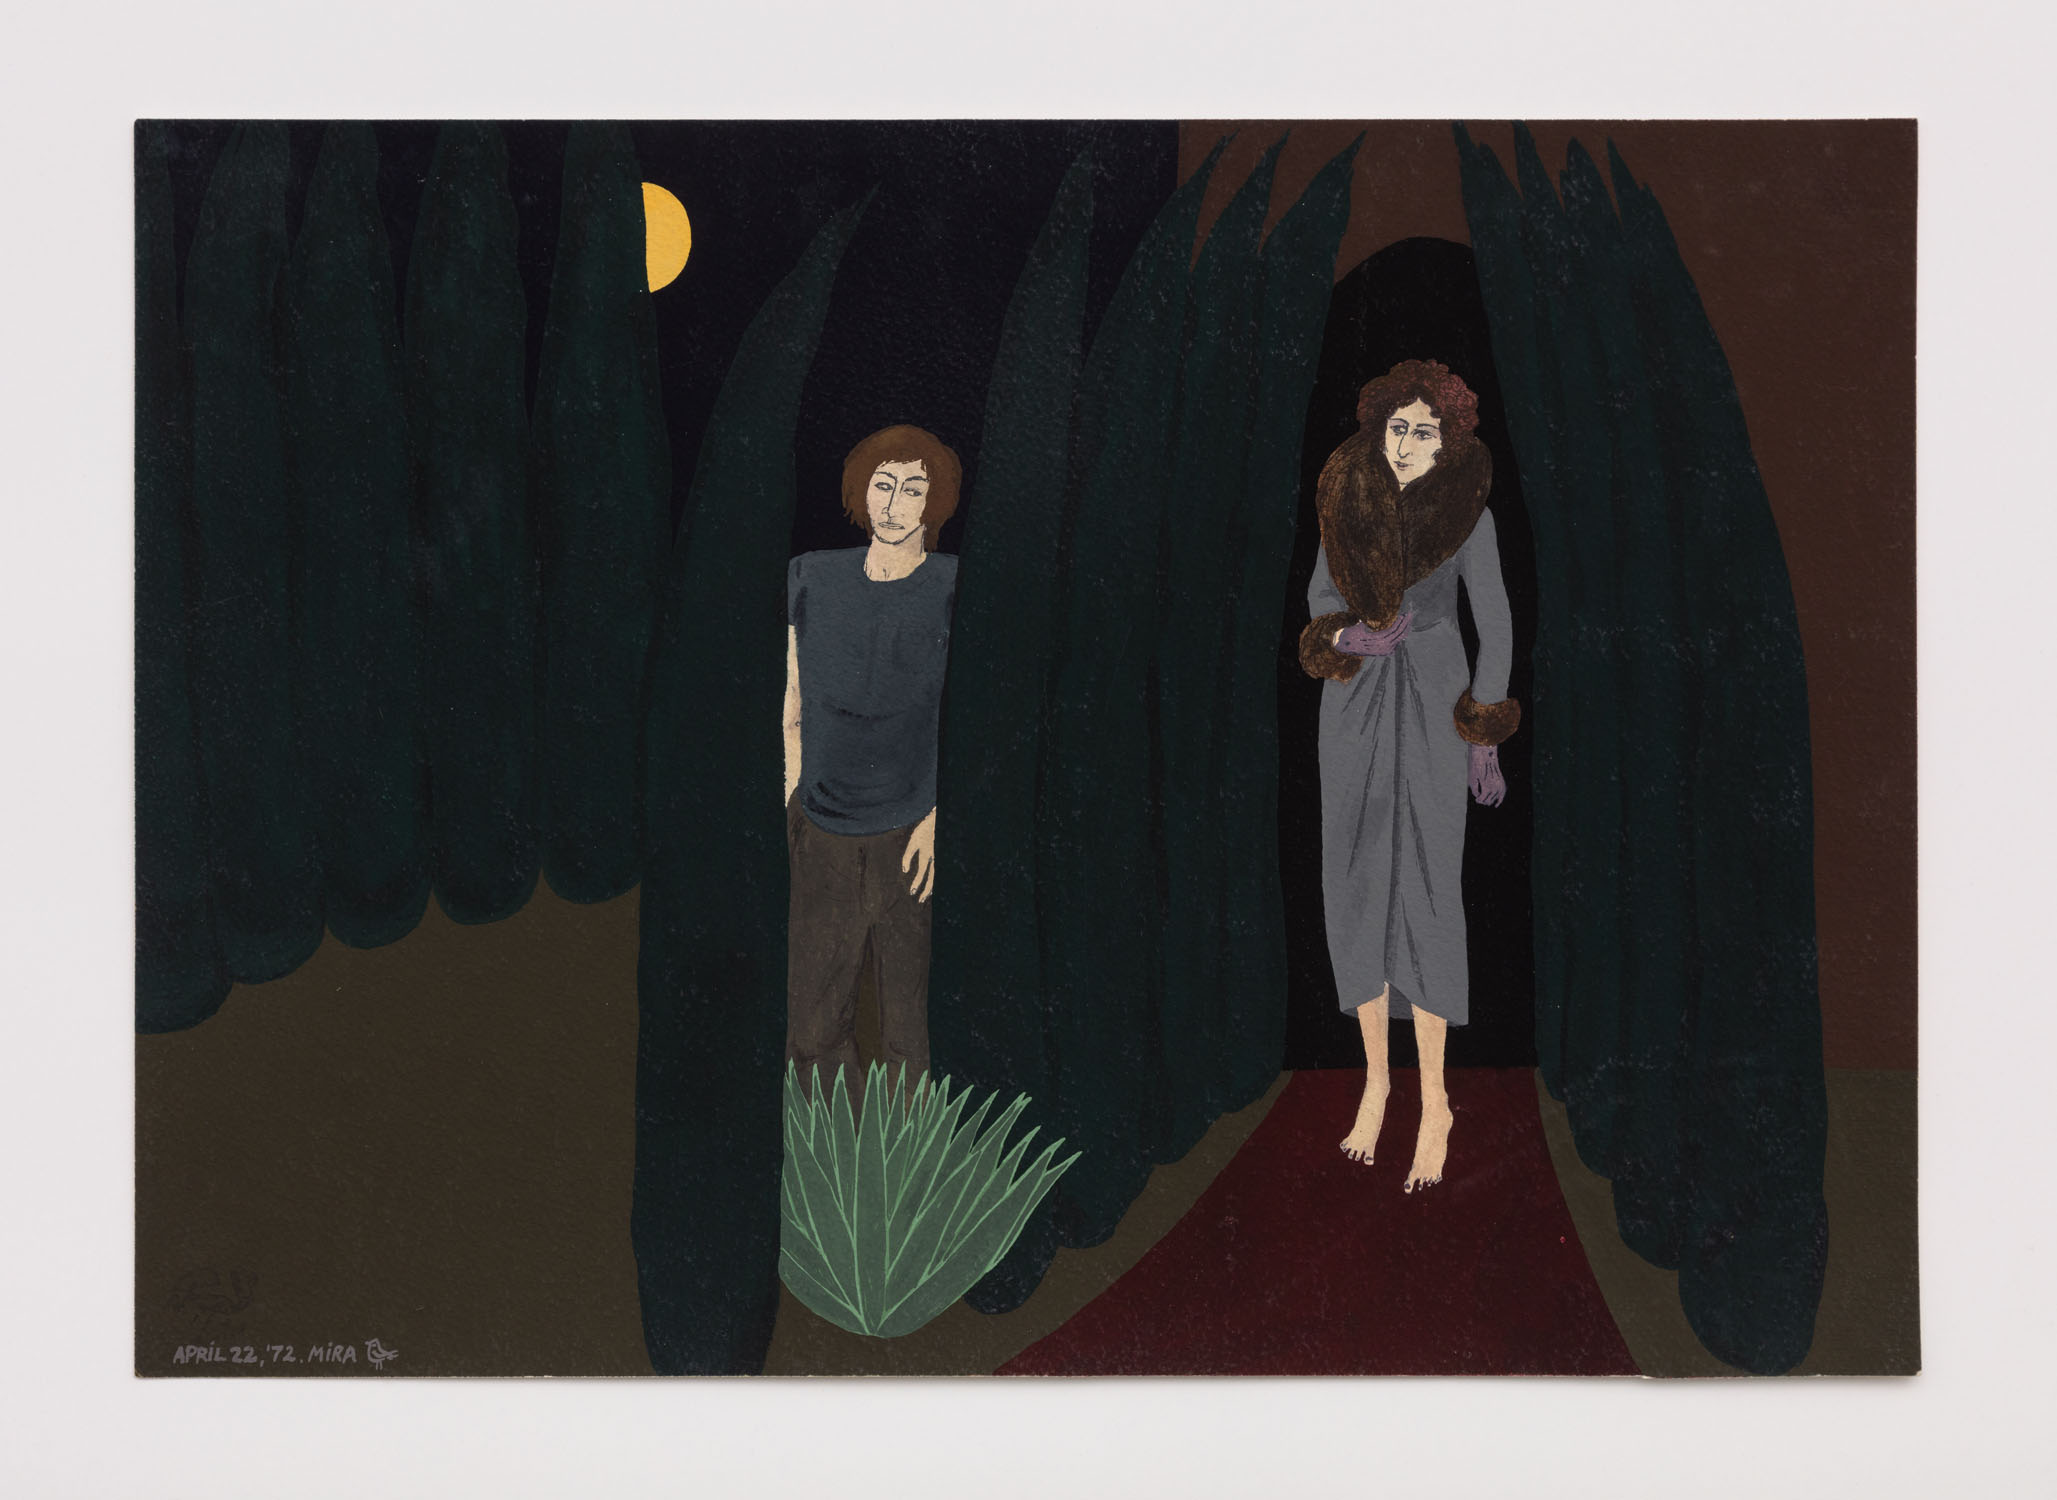 Mira Schor   California Night , April 22, 1972  Gouache on paper  13.75 x 19.75 inches